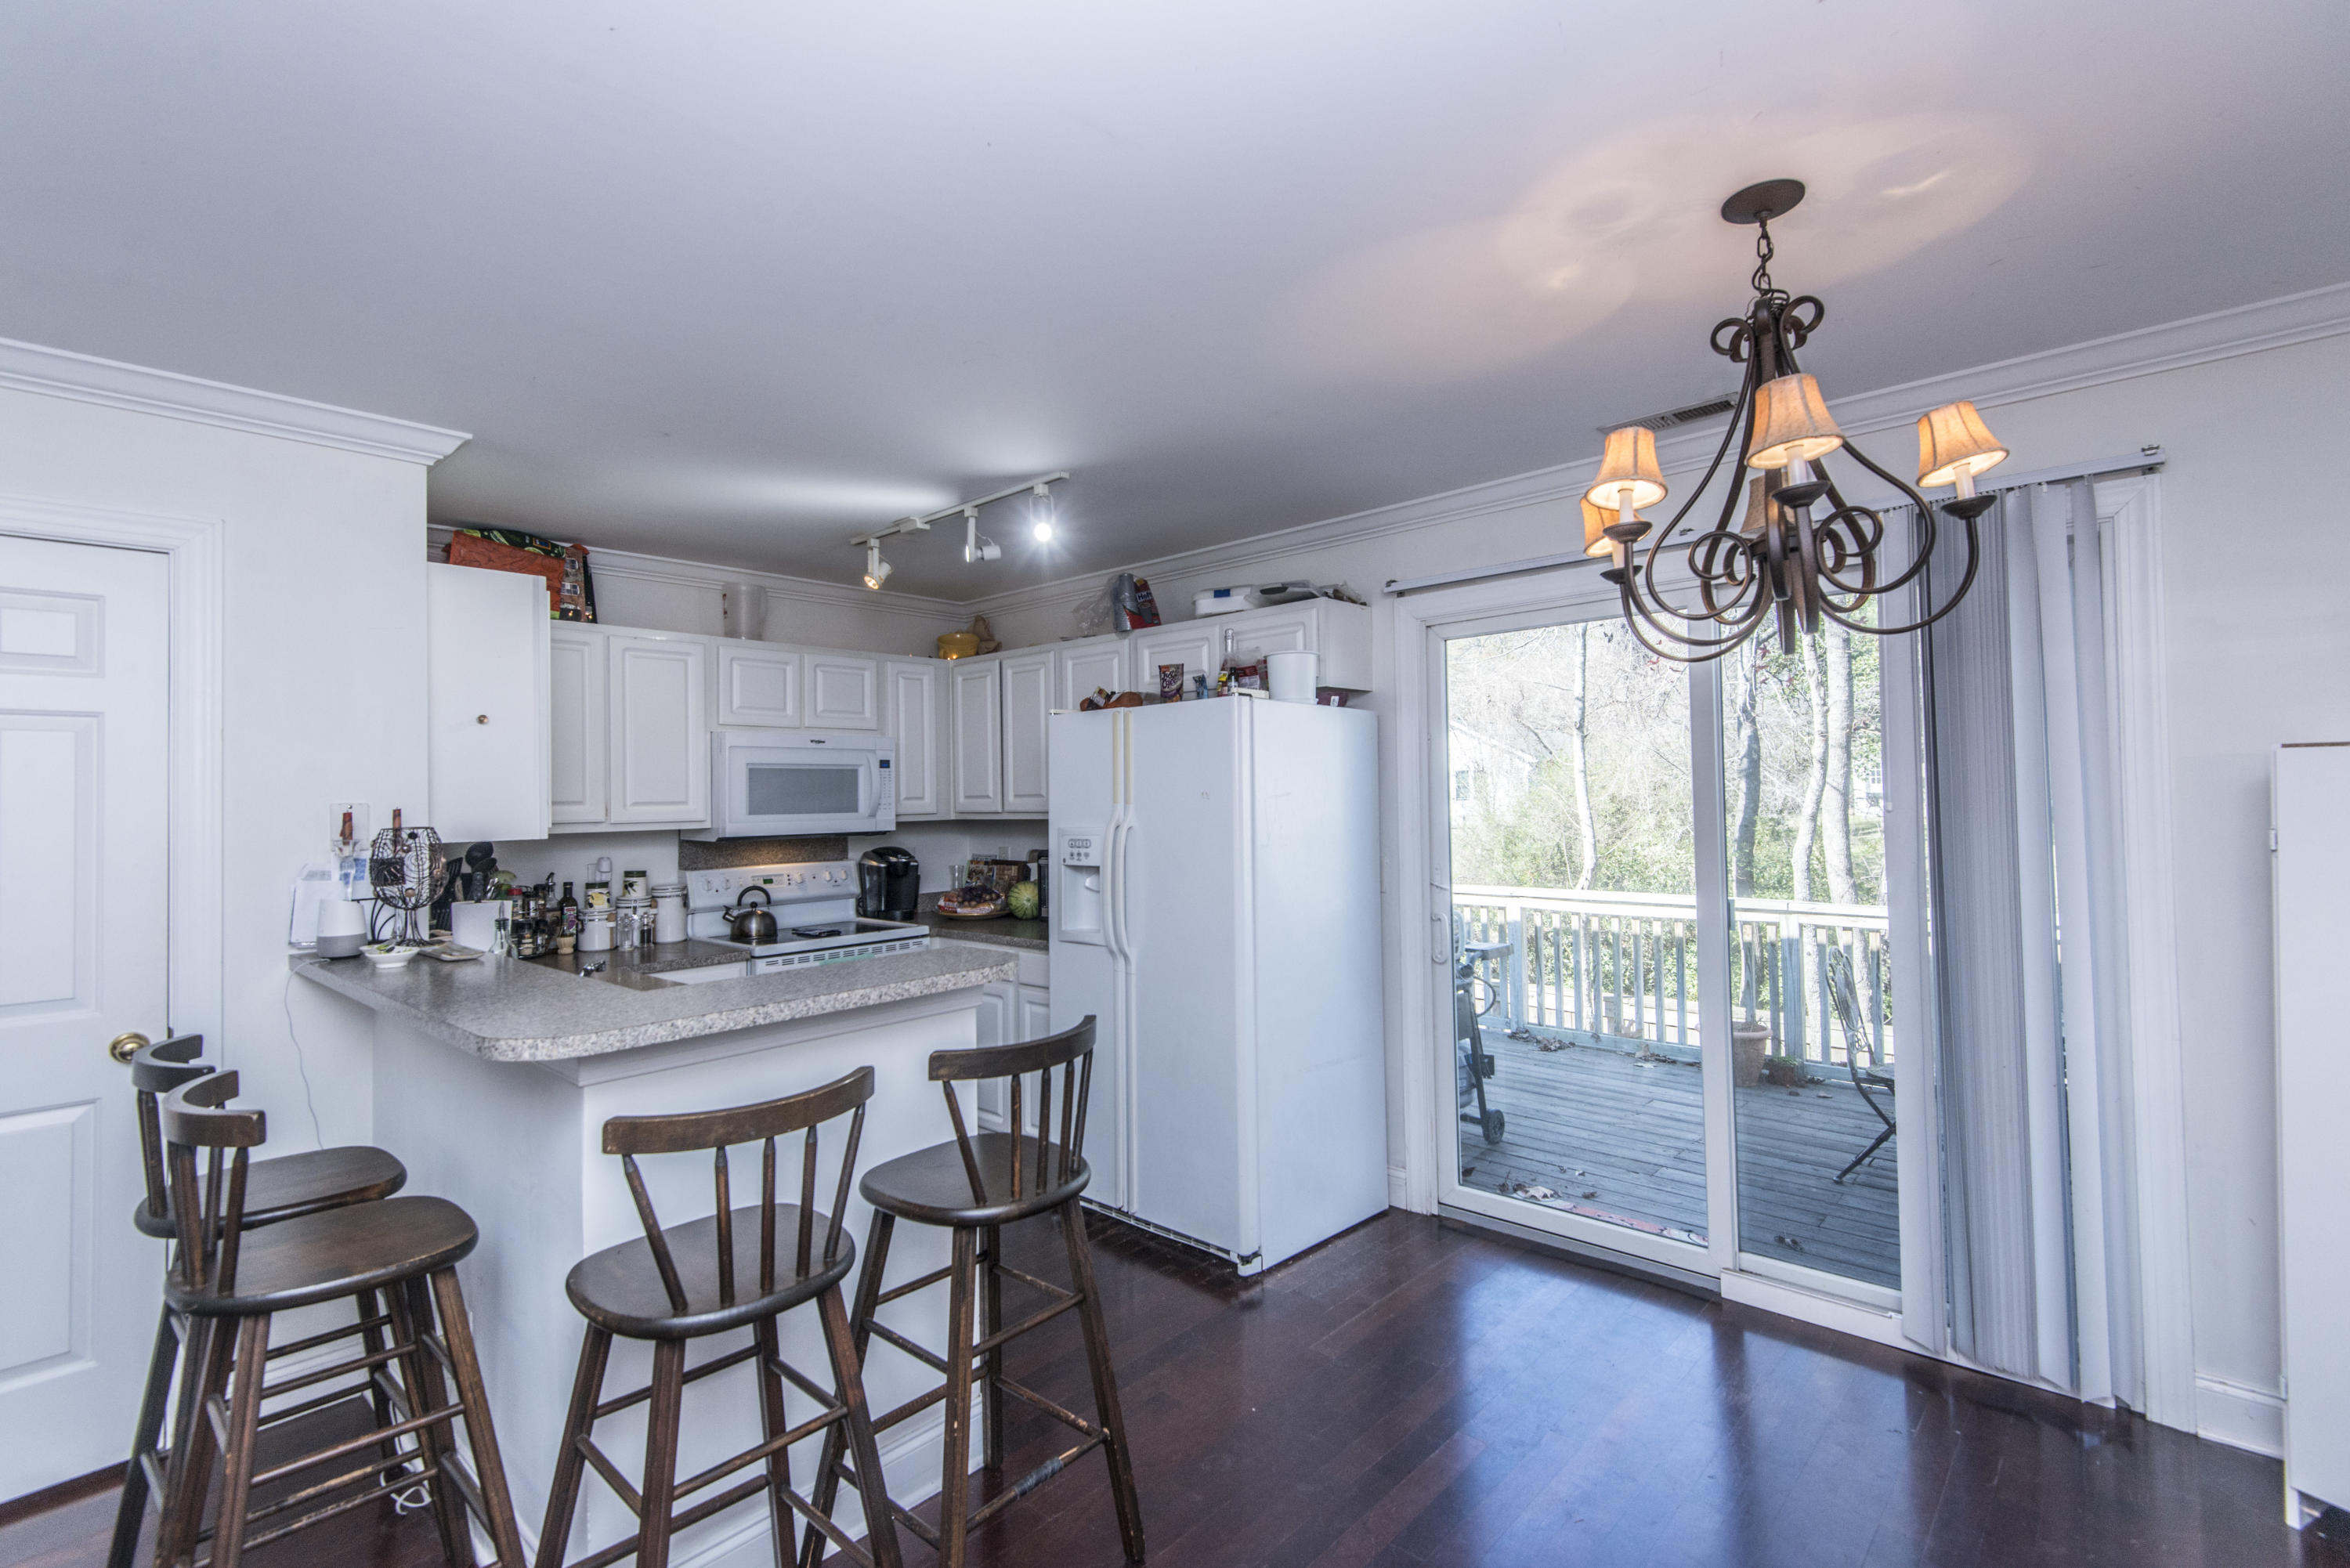 The Reserve at Wando East Homes For Sale - 1675 Lauda, Mount Pleasant, SC - 21